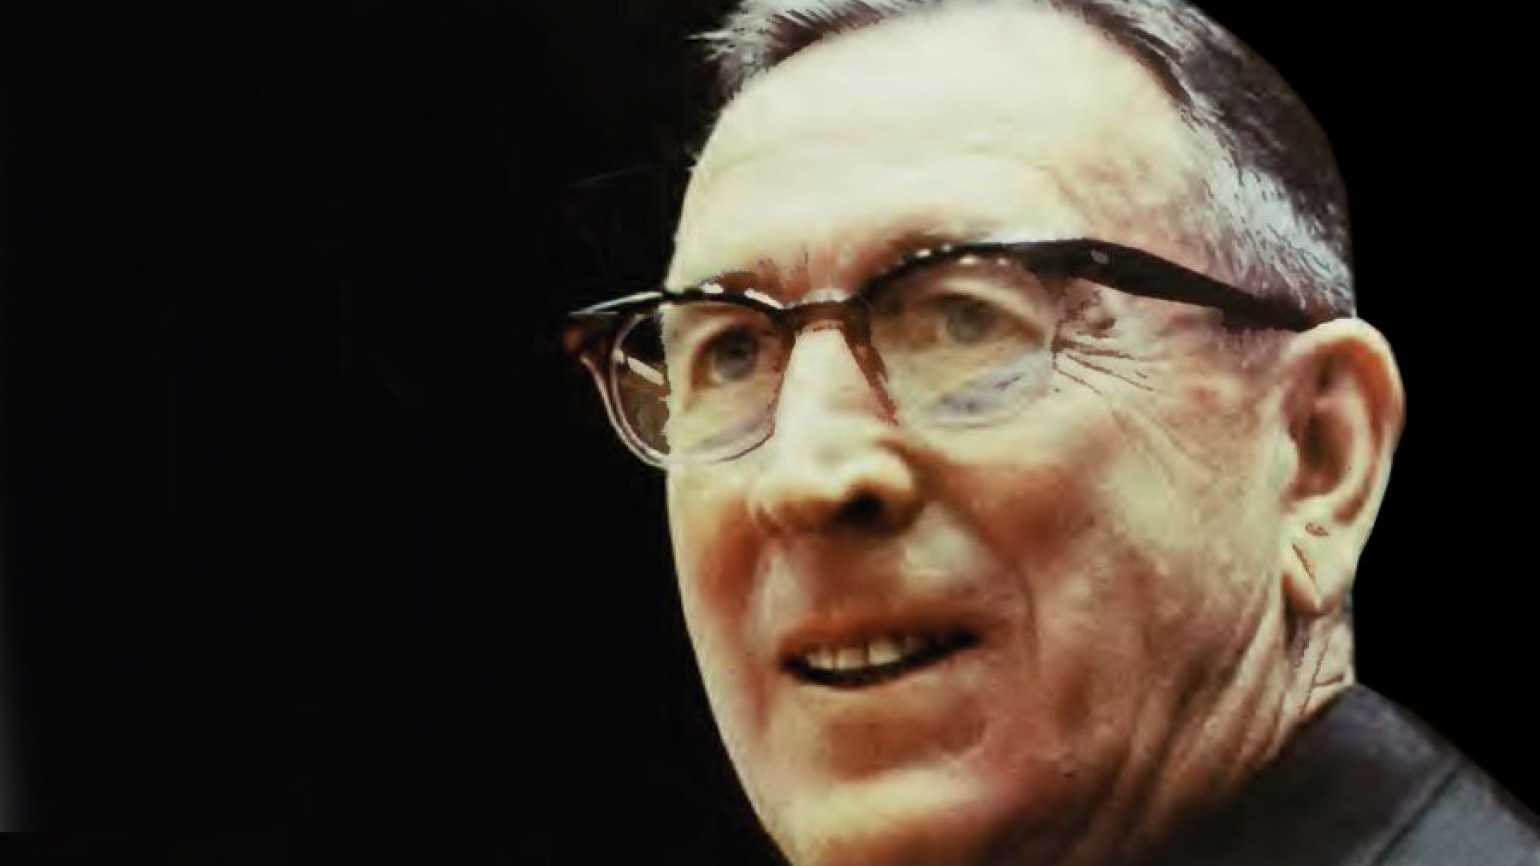 Hall of Fame college basketball coach John Wooden